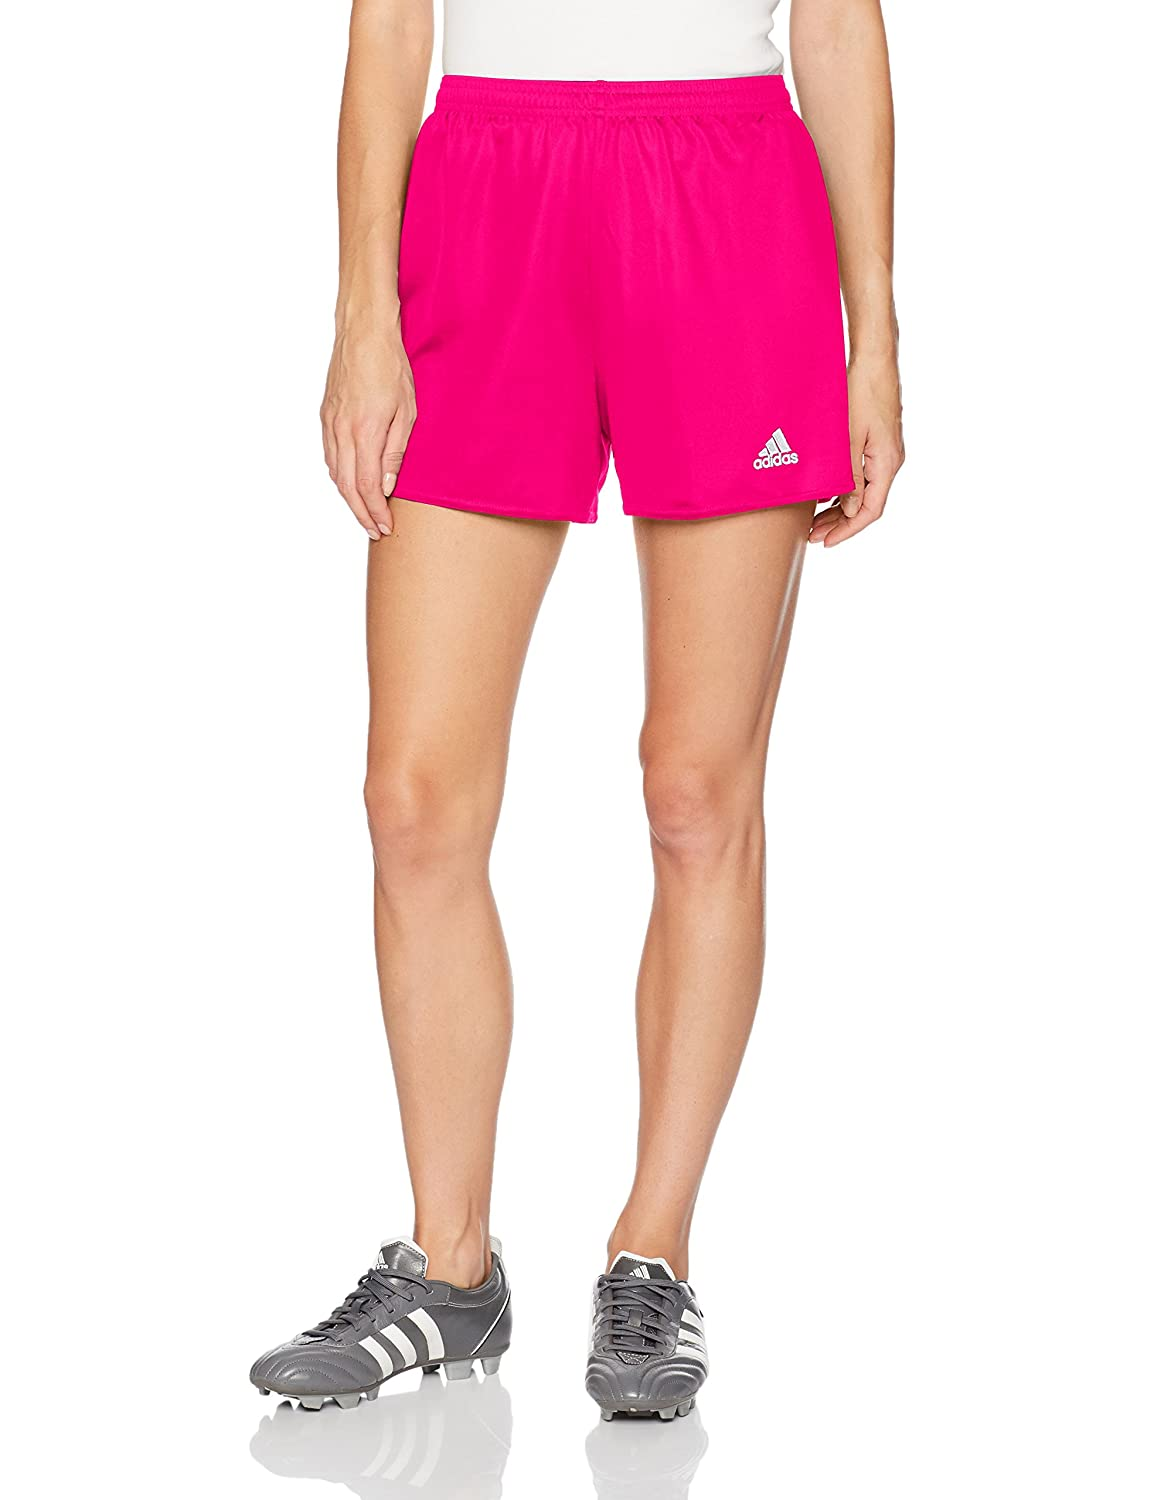 adidas Performance Women's Parma 16 Shorts, Bright Pink, Large INLJC S1606GHTM010W